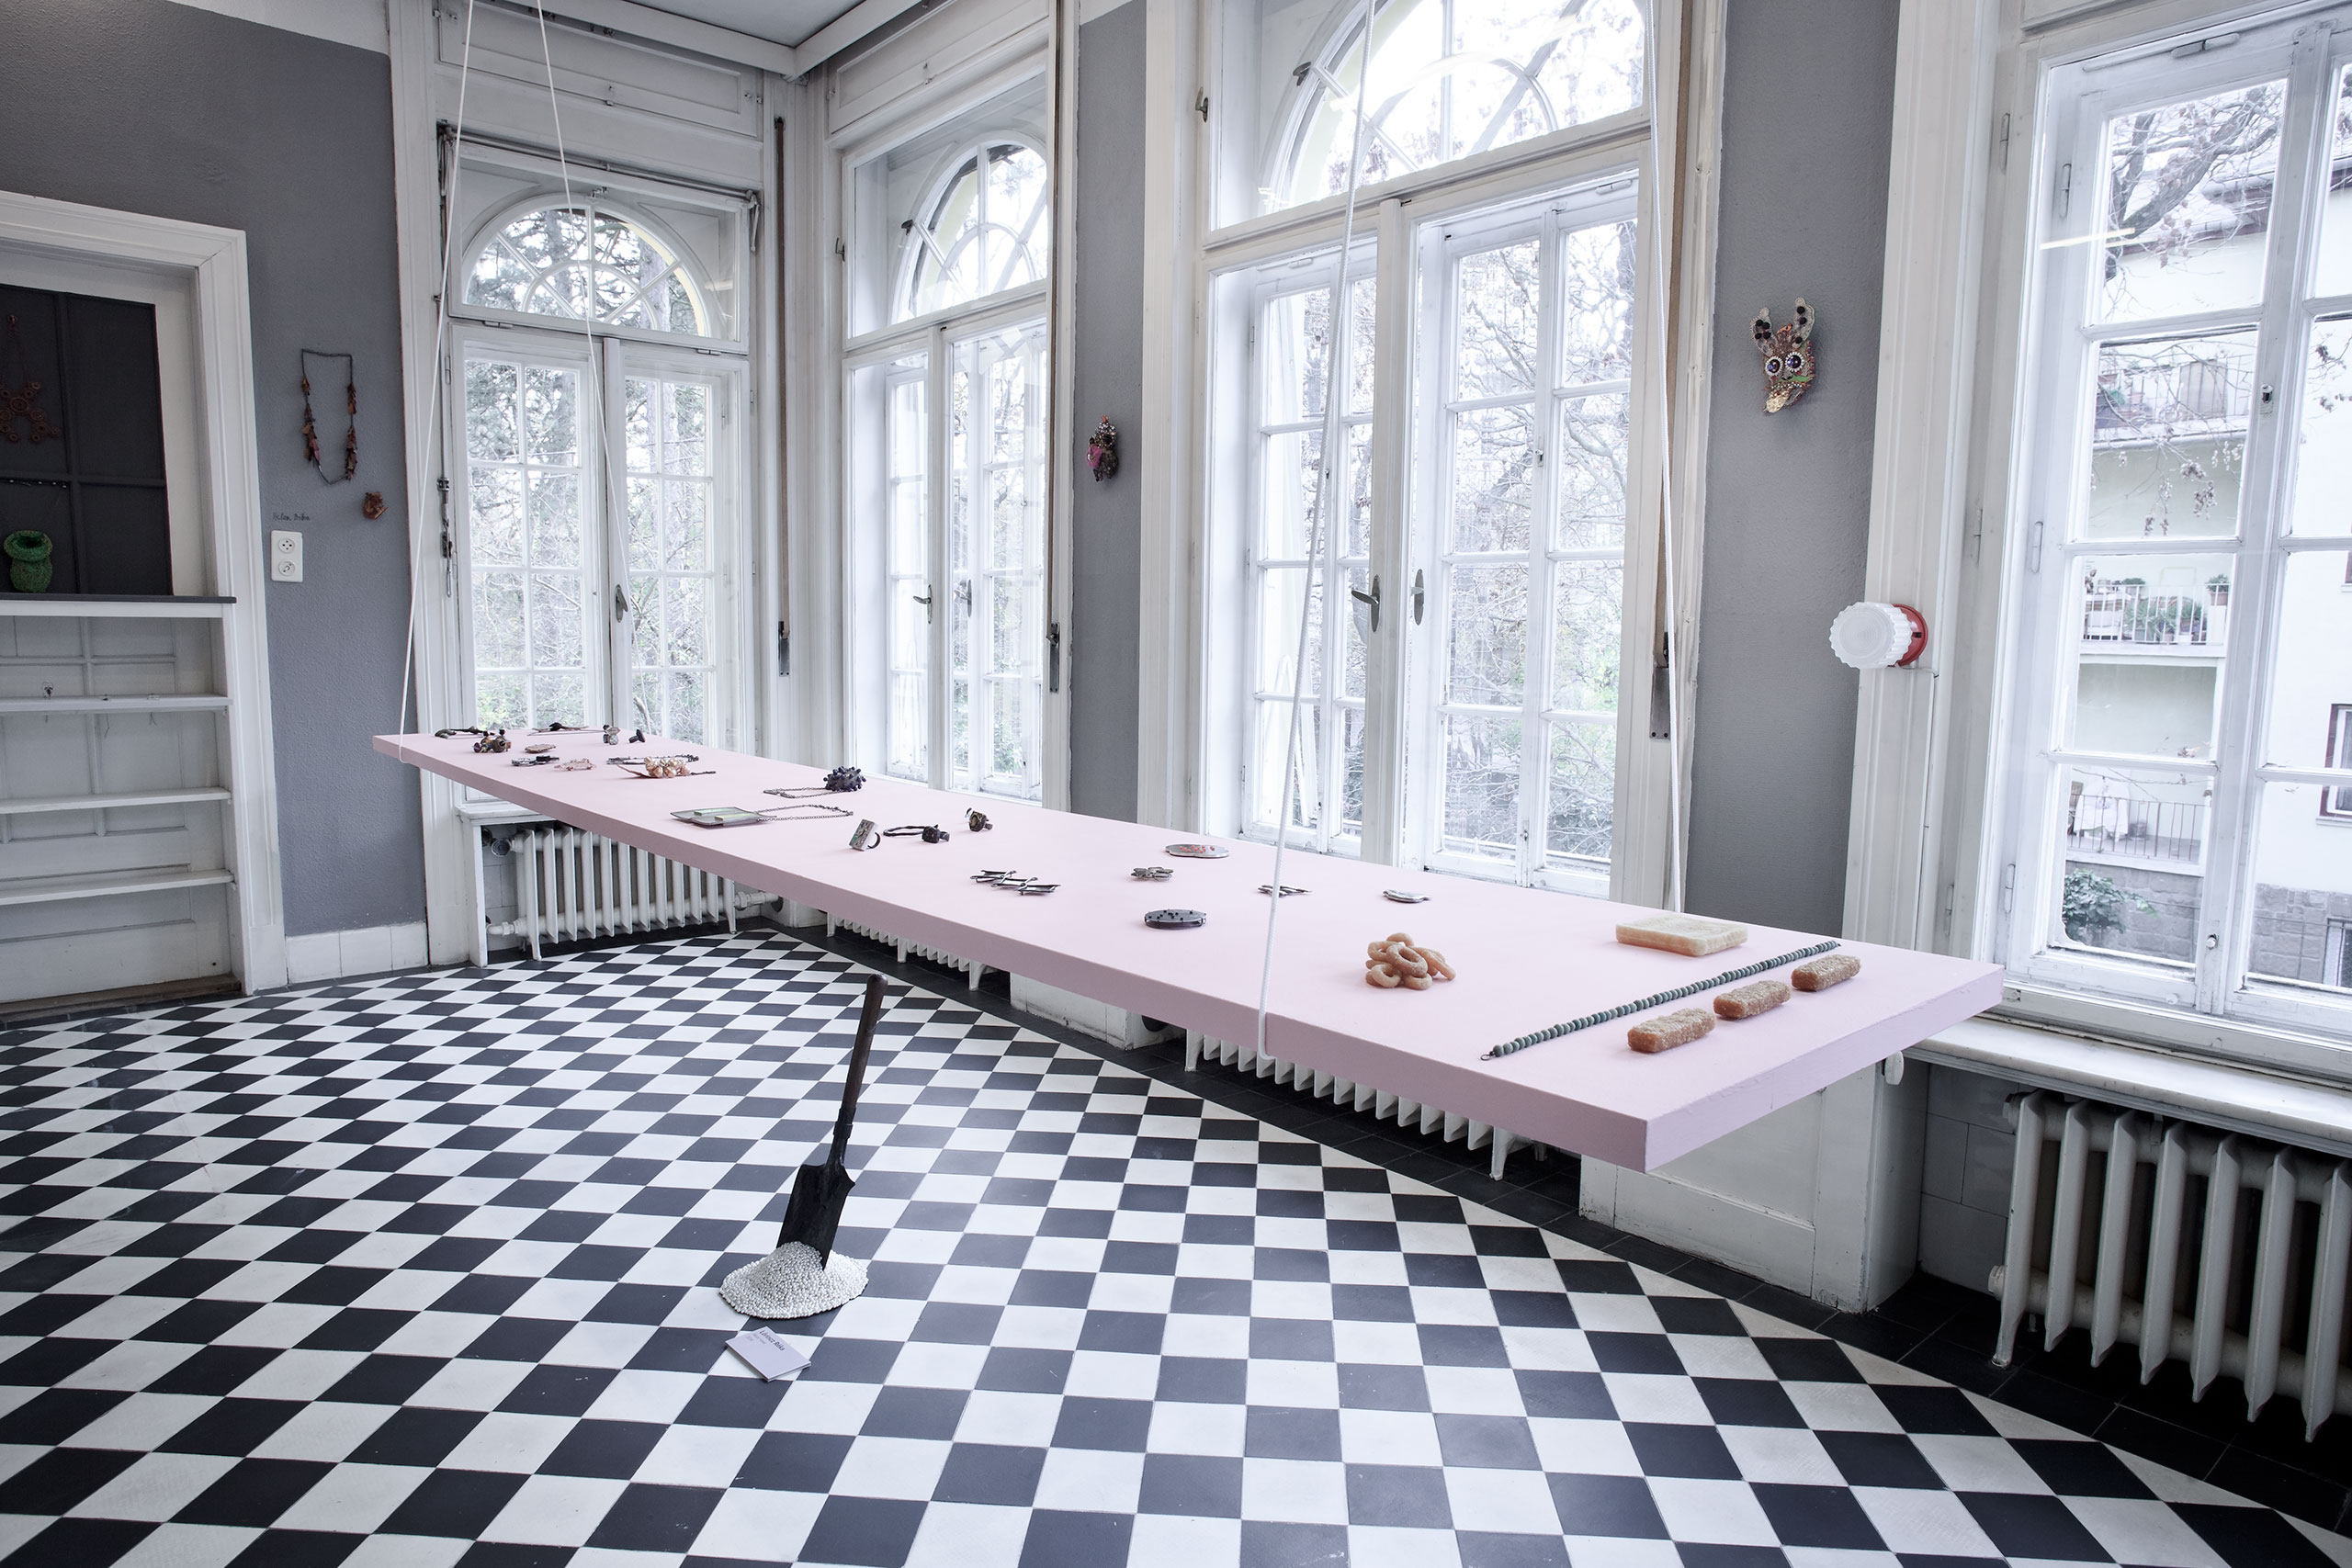 Installation view. Room filled up with the works of world famous contemporary jewellery makers. Photo by Aron Weber.